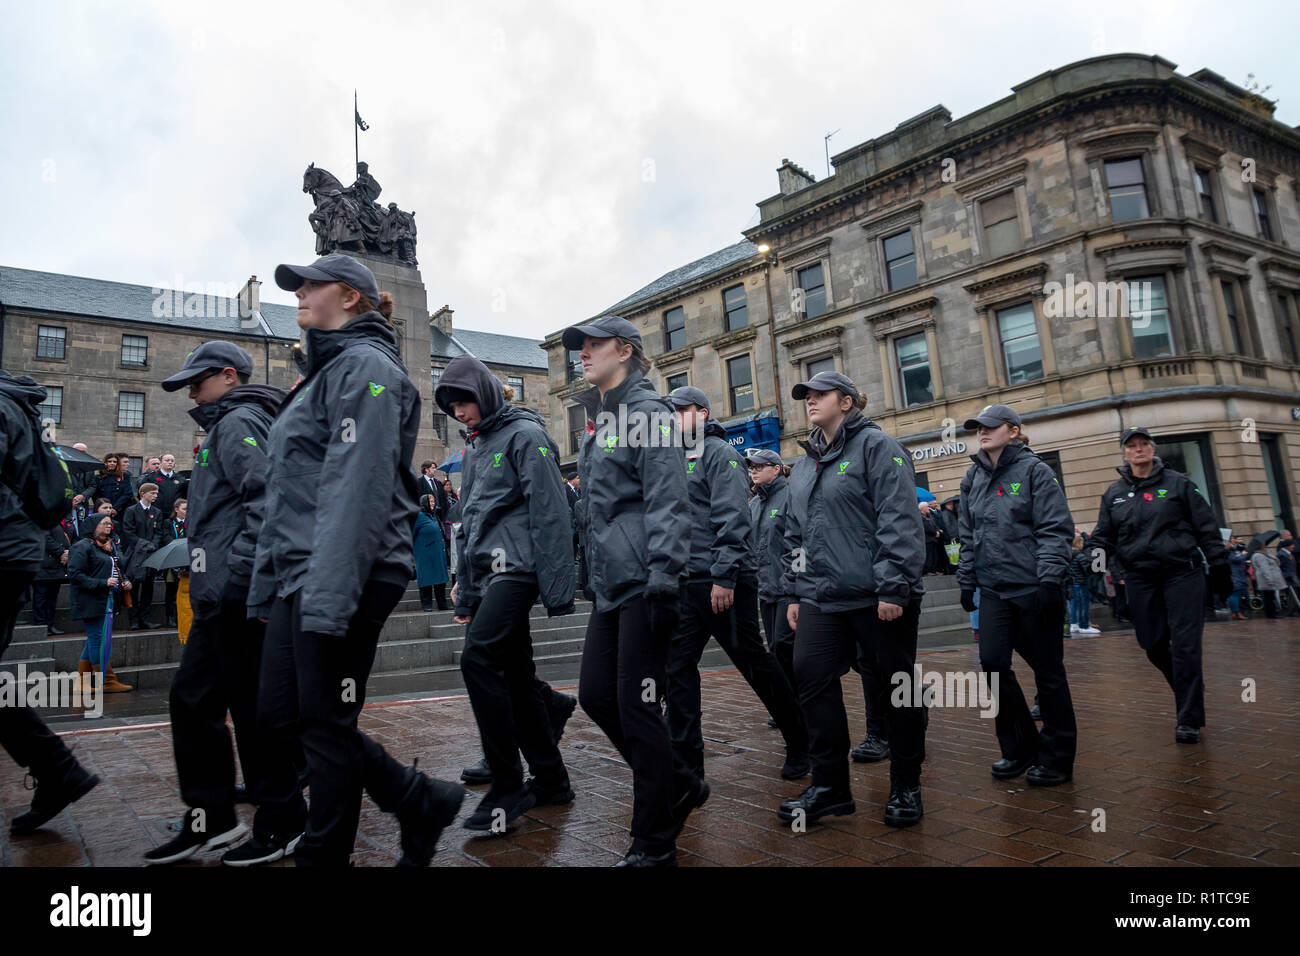 Remembrance Sunday November 11th 2018 Paisley 100th Anniversary Of The End Of WW1 Stock Photo